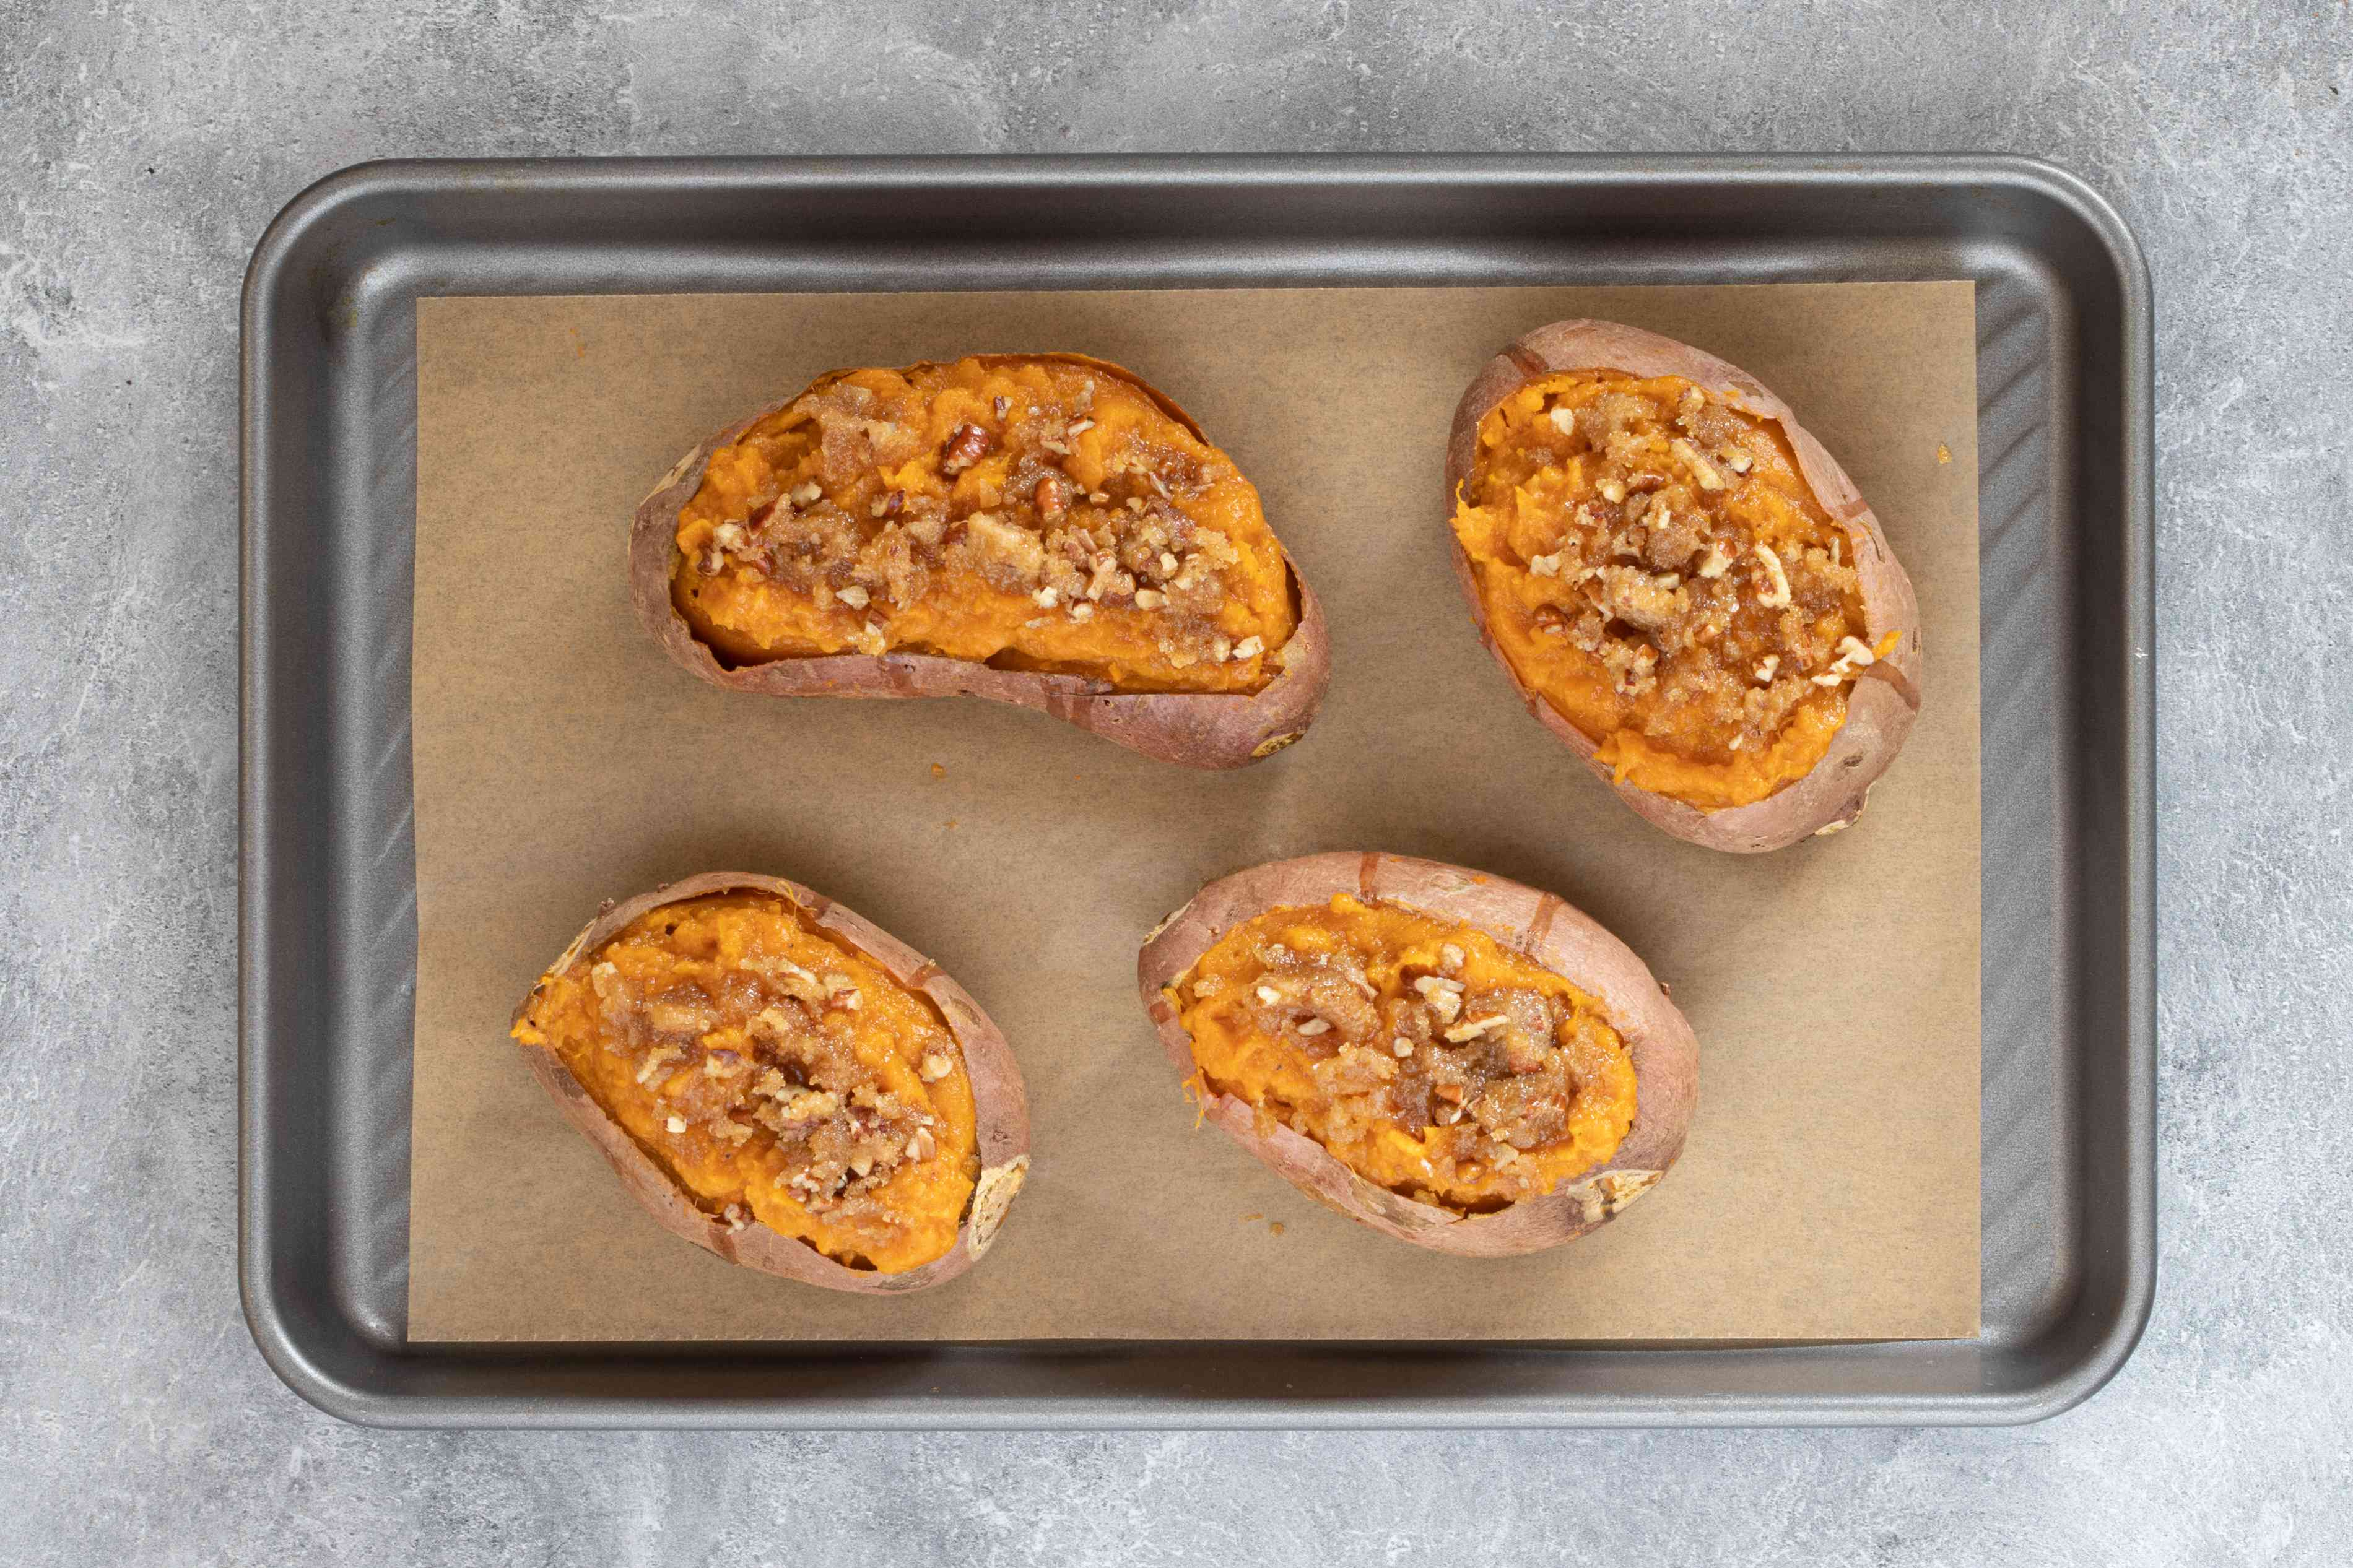 twice-baked sweet potatoes ready for the oven